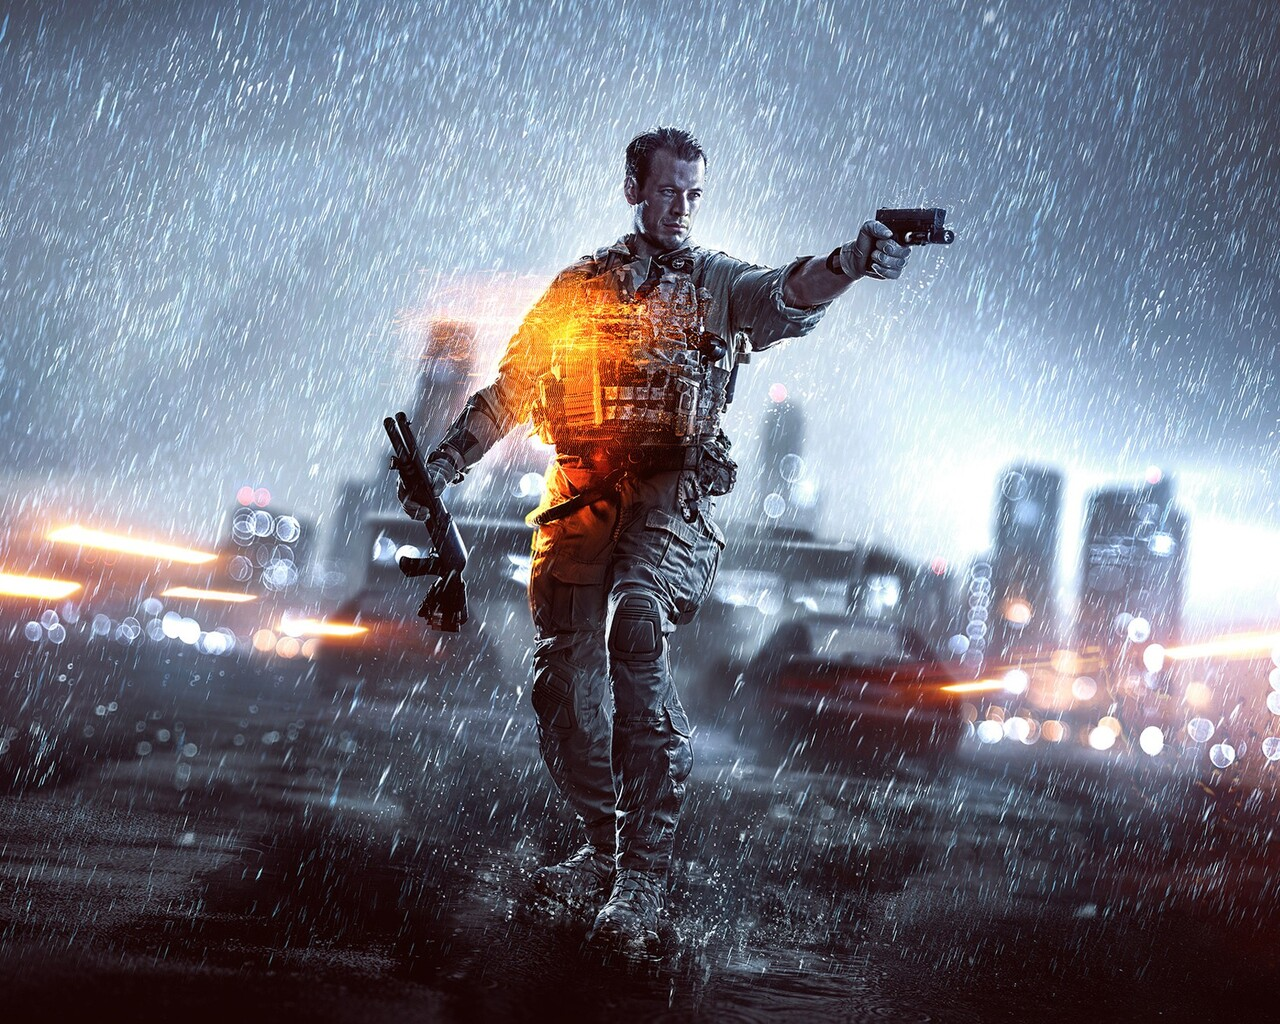 1280x1024 Battlefield 4 Battlefest Resolution HD 4k